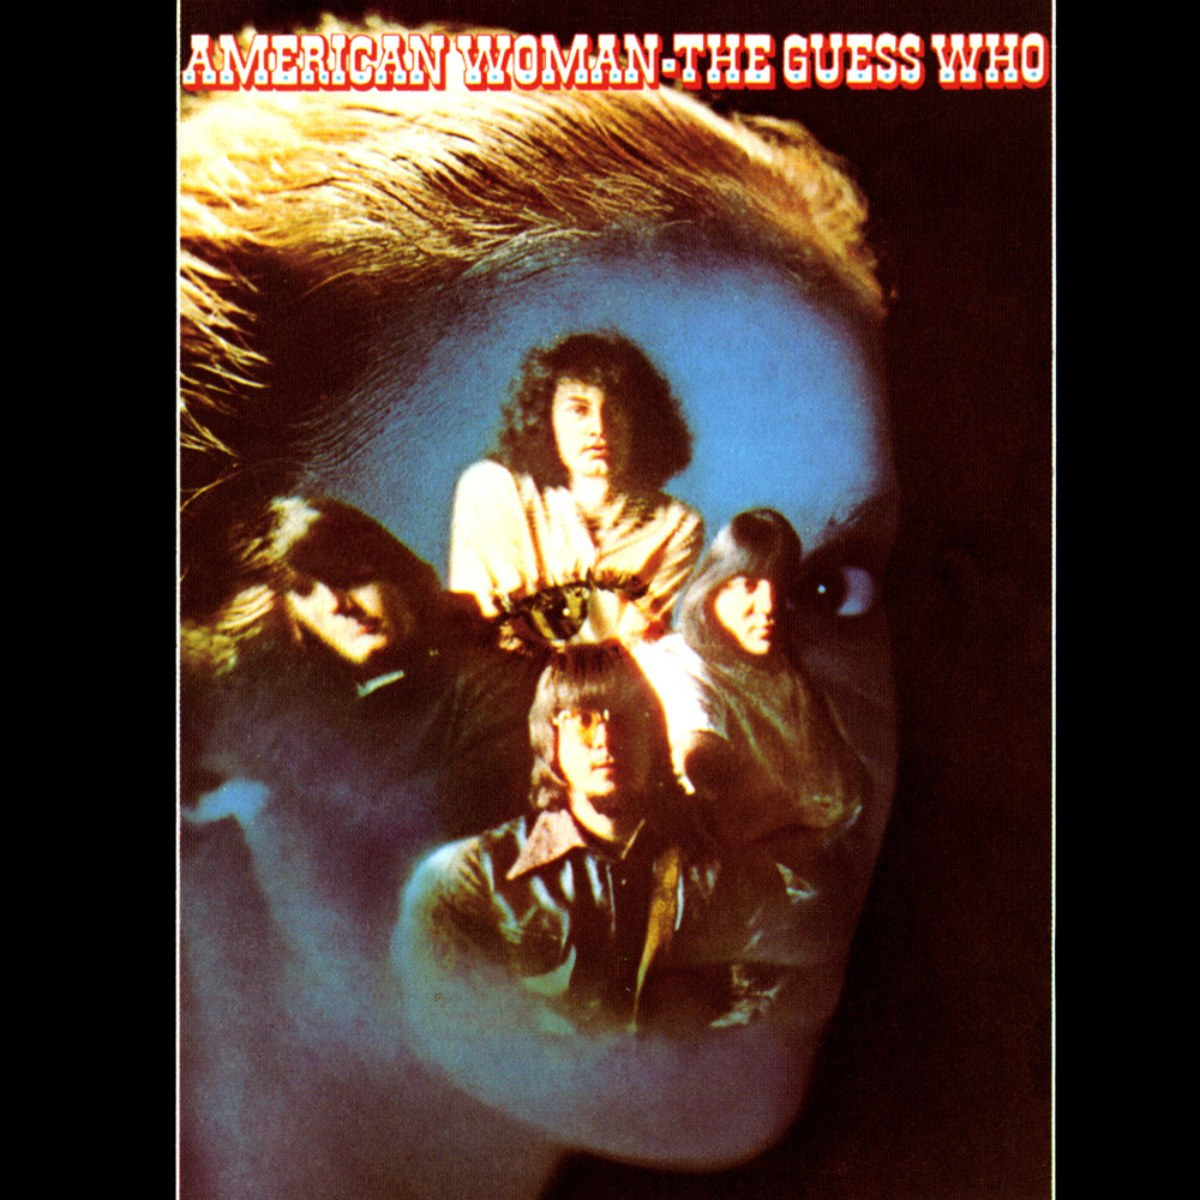 The Guess Who, обложка альбома American Woman